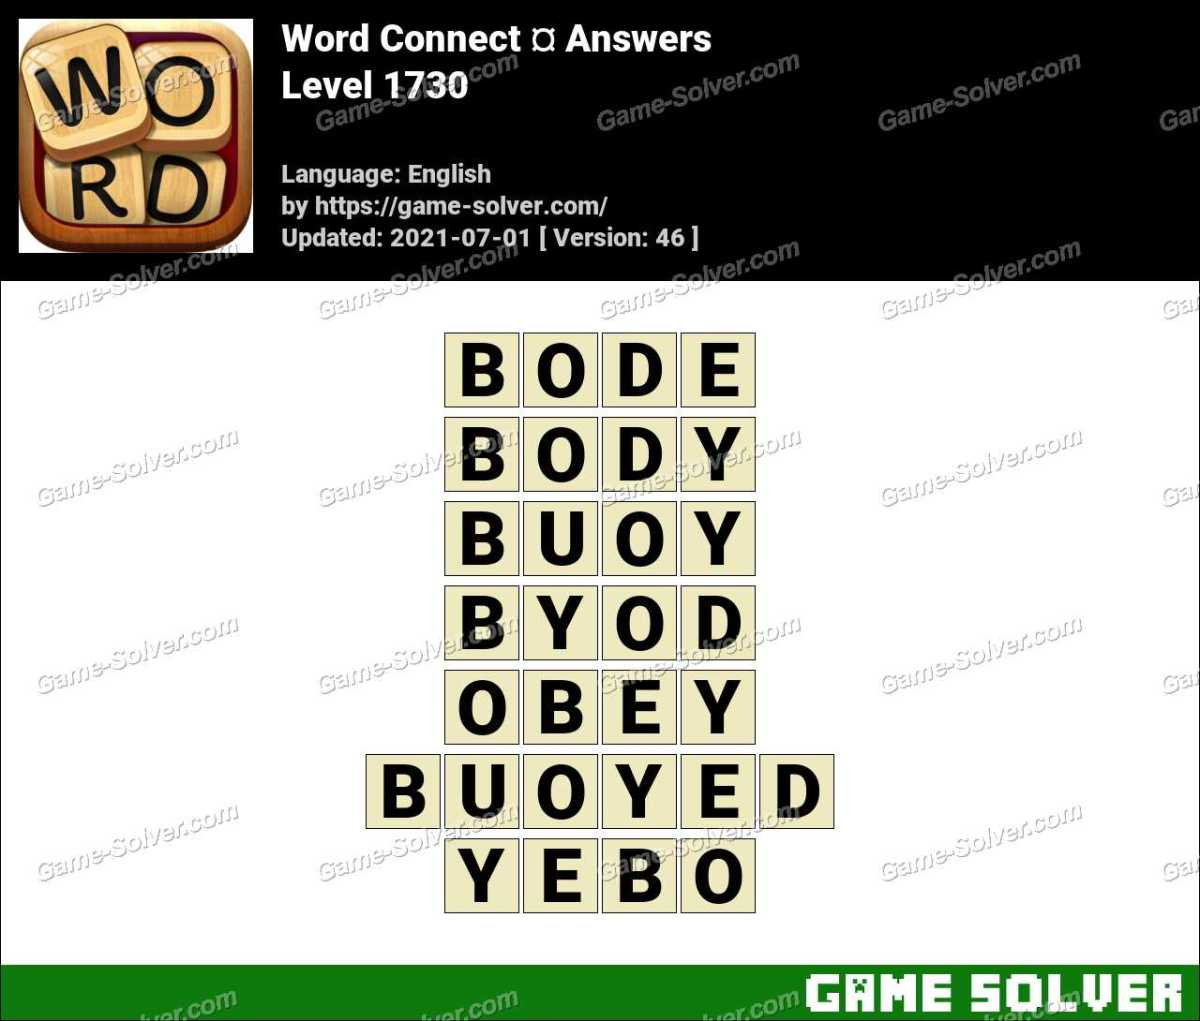 Word Connect Level 1730 Answers